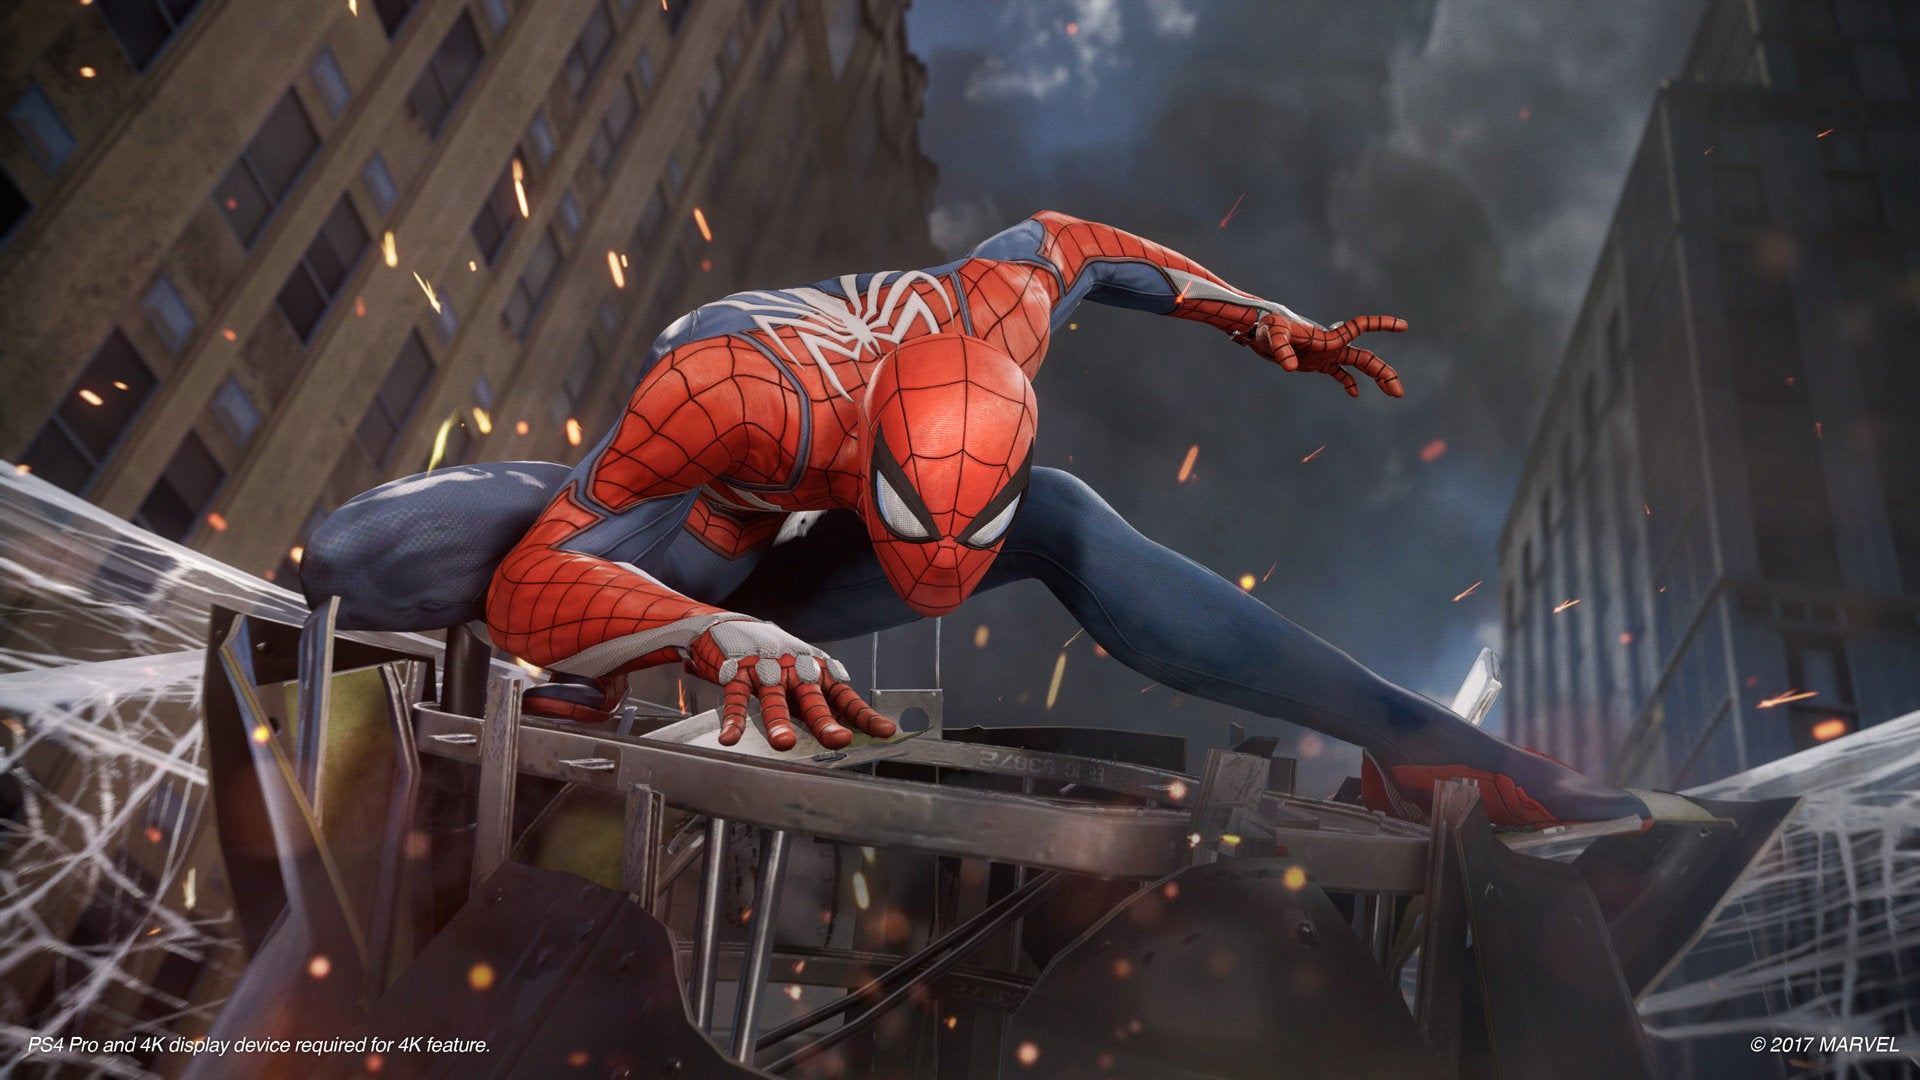 New Featurette For The Making of Marvel's Spider-Man For Playstation 4